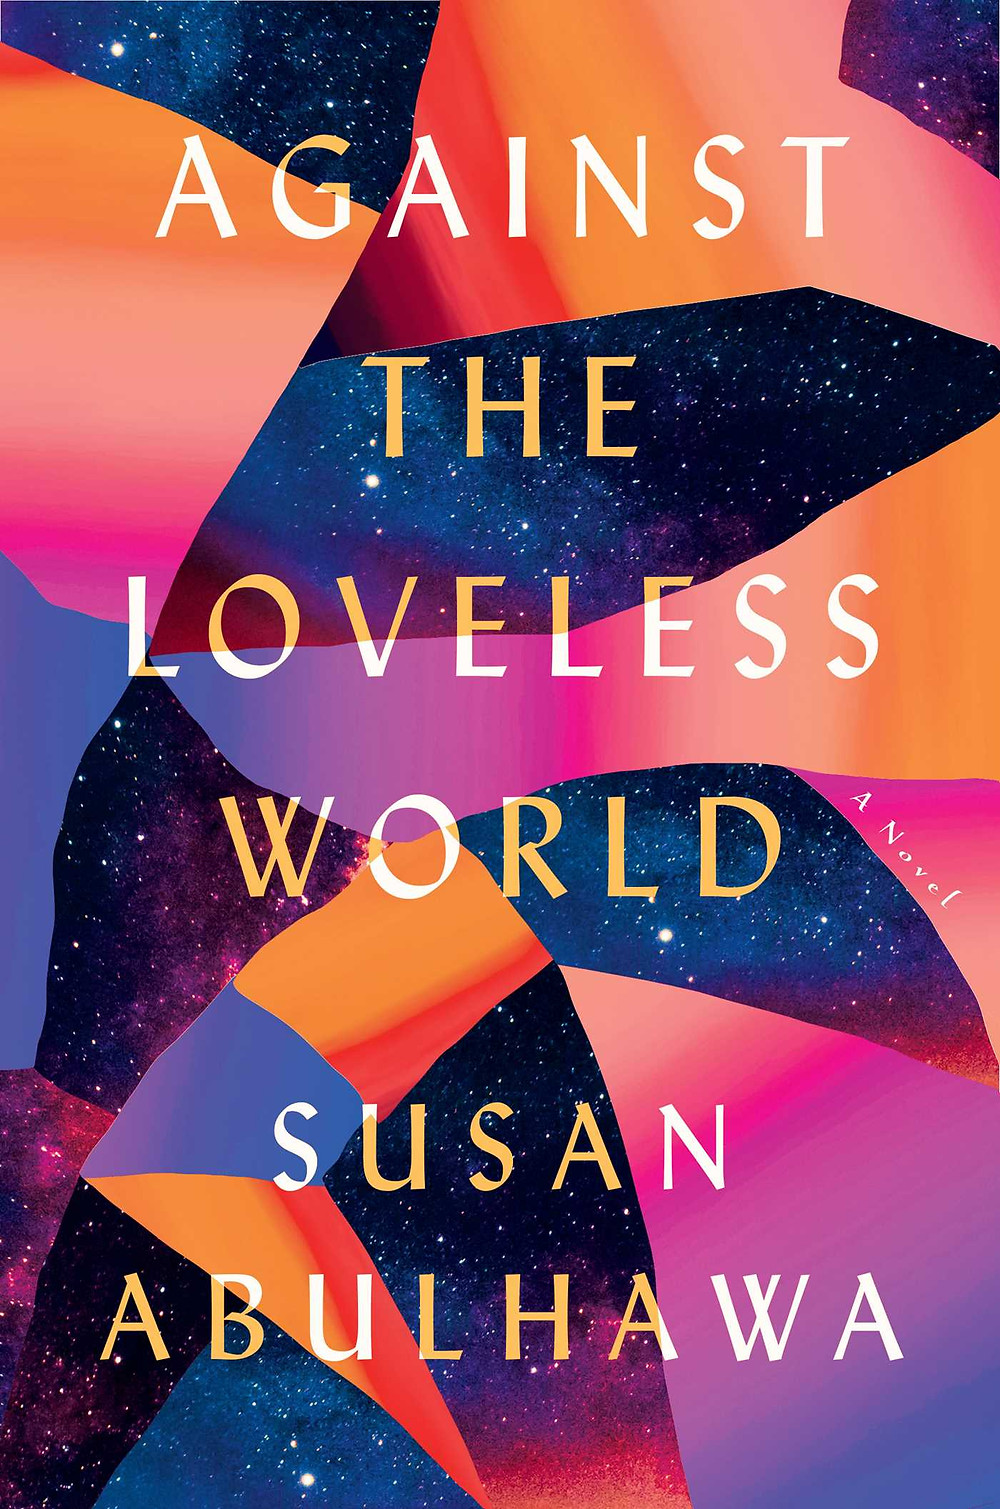 book cover of Susan Abulhawa's Against the Loveless World